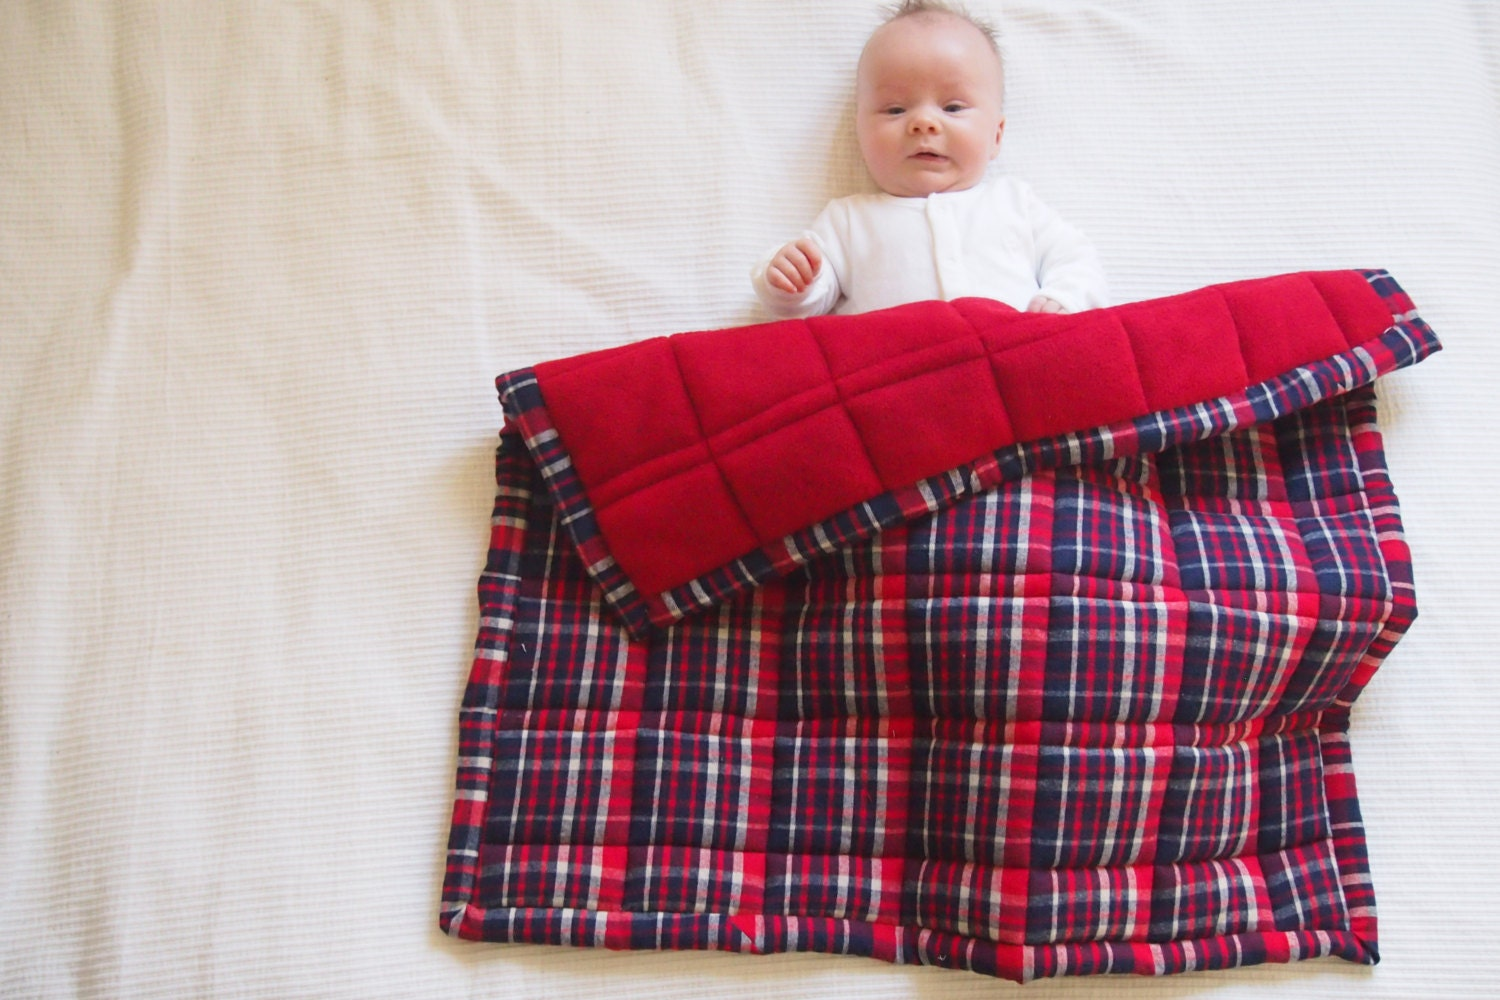 Plaid Baby Quilt: Plaid Flannel Baby Quilt Red And Blue